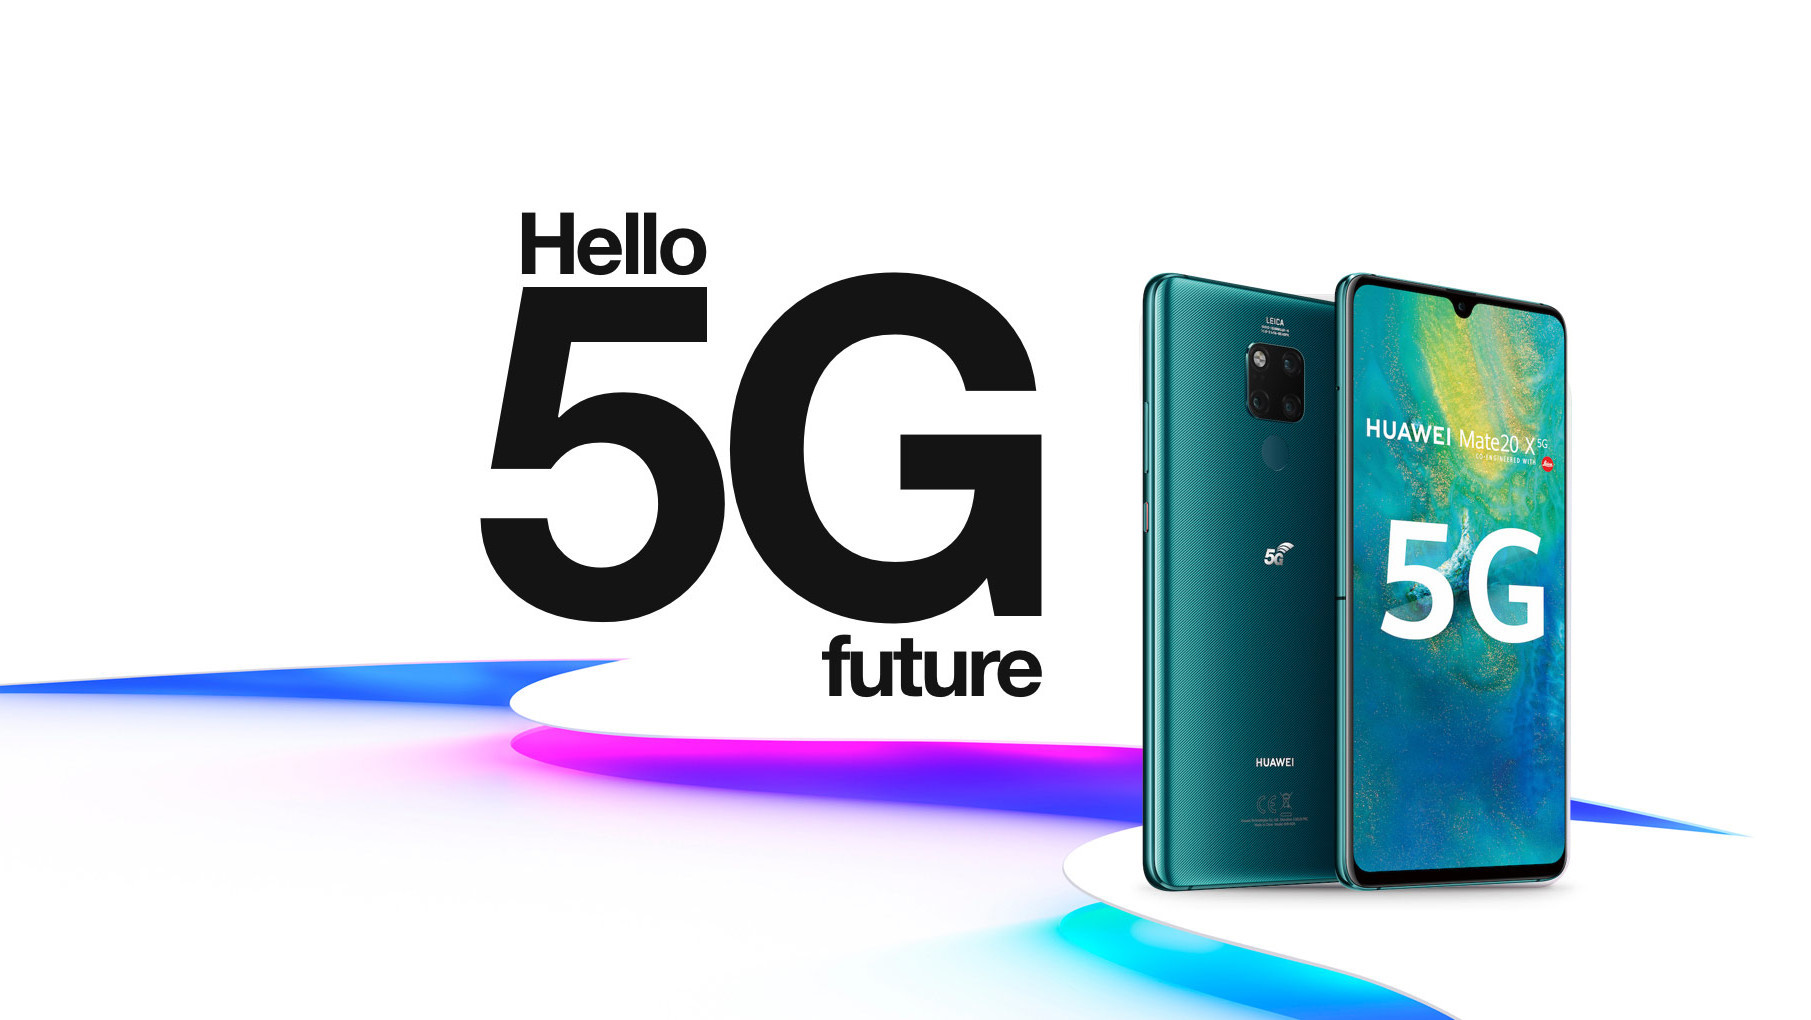 """Three set to launch """"full 5G experience"""" without speed caps"""